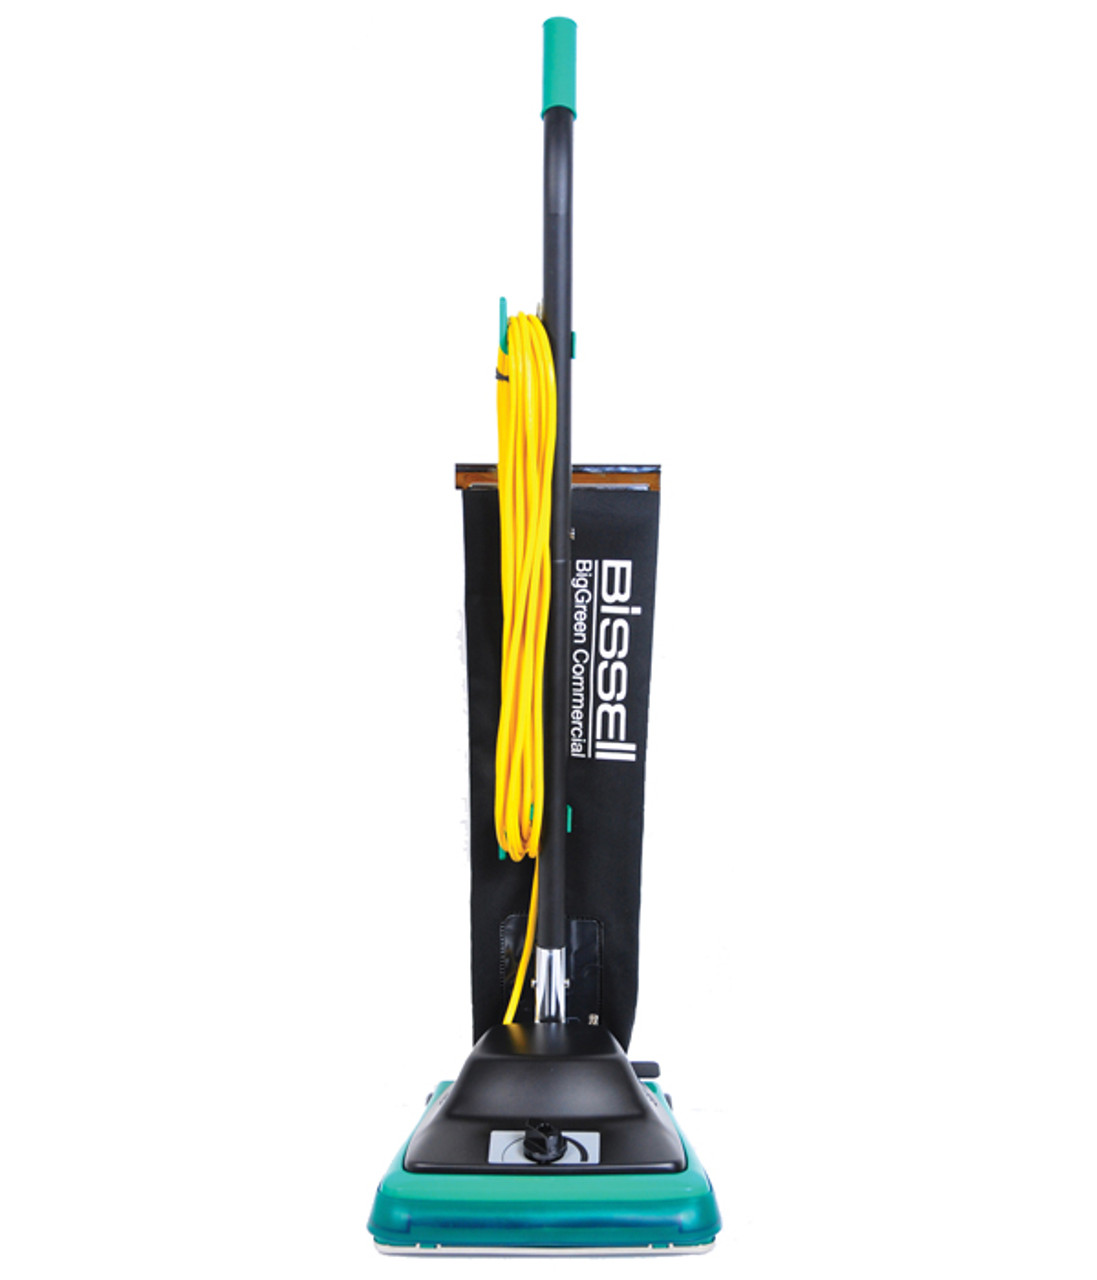 Bissell ProTough Upright Commercial Vacuum Model BG100 has a 6 position carpet height adjustment and long 50 ft. cord.